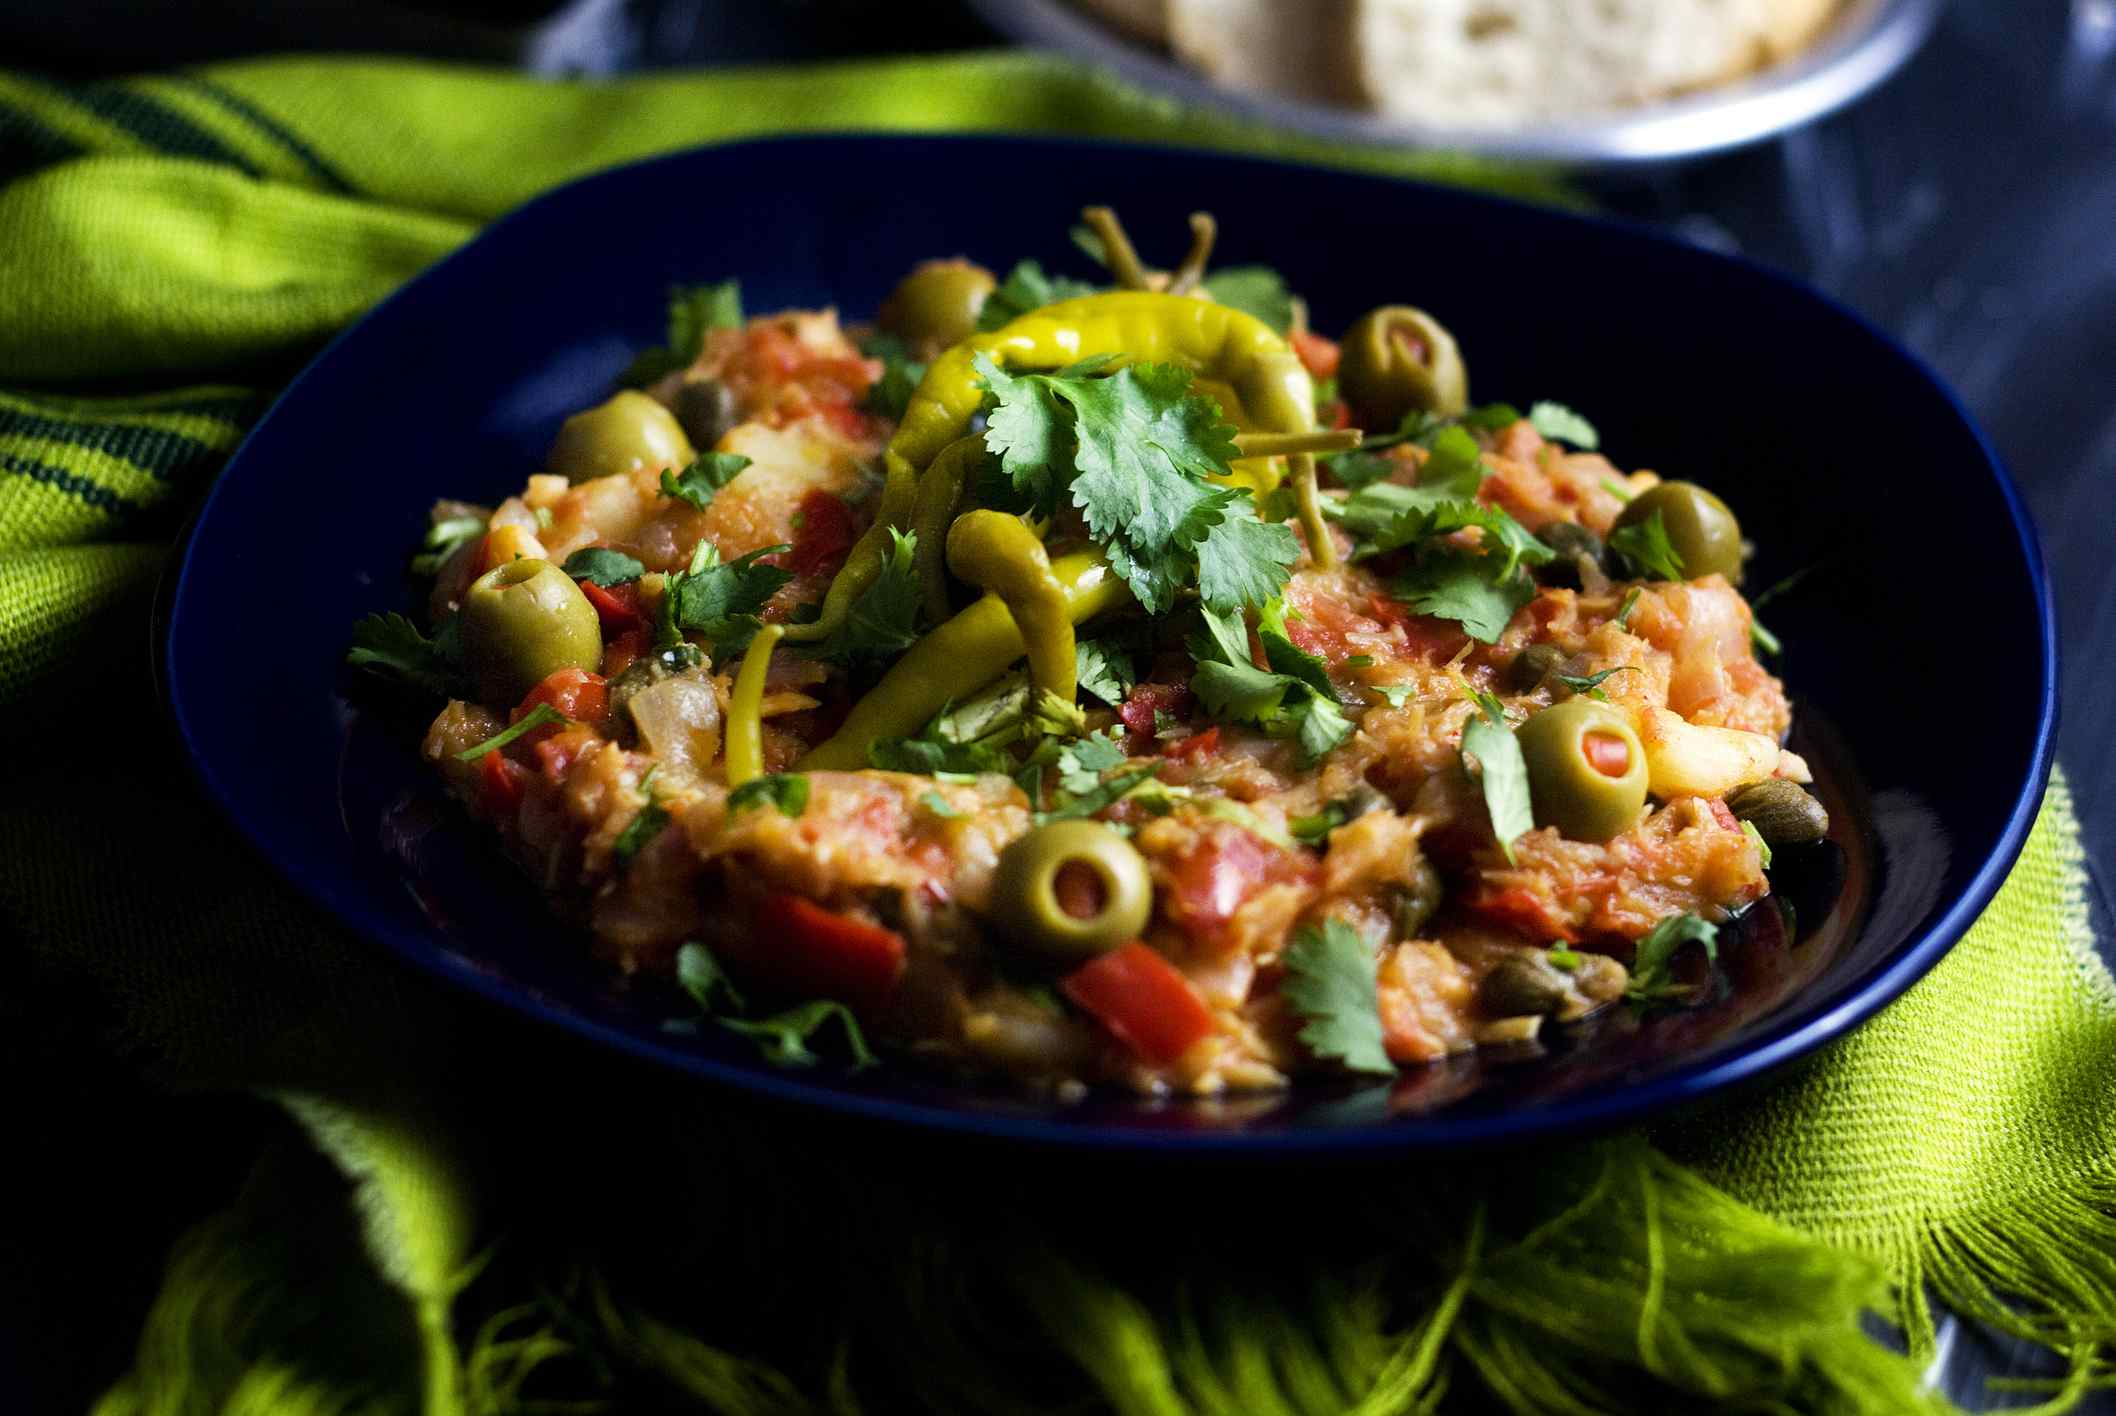 Bacalao with onions, peppers, and olives